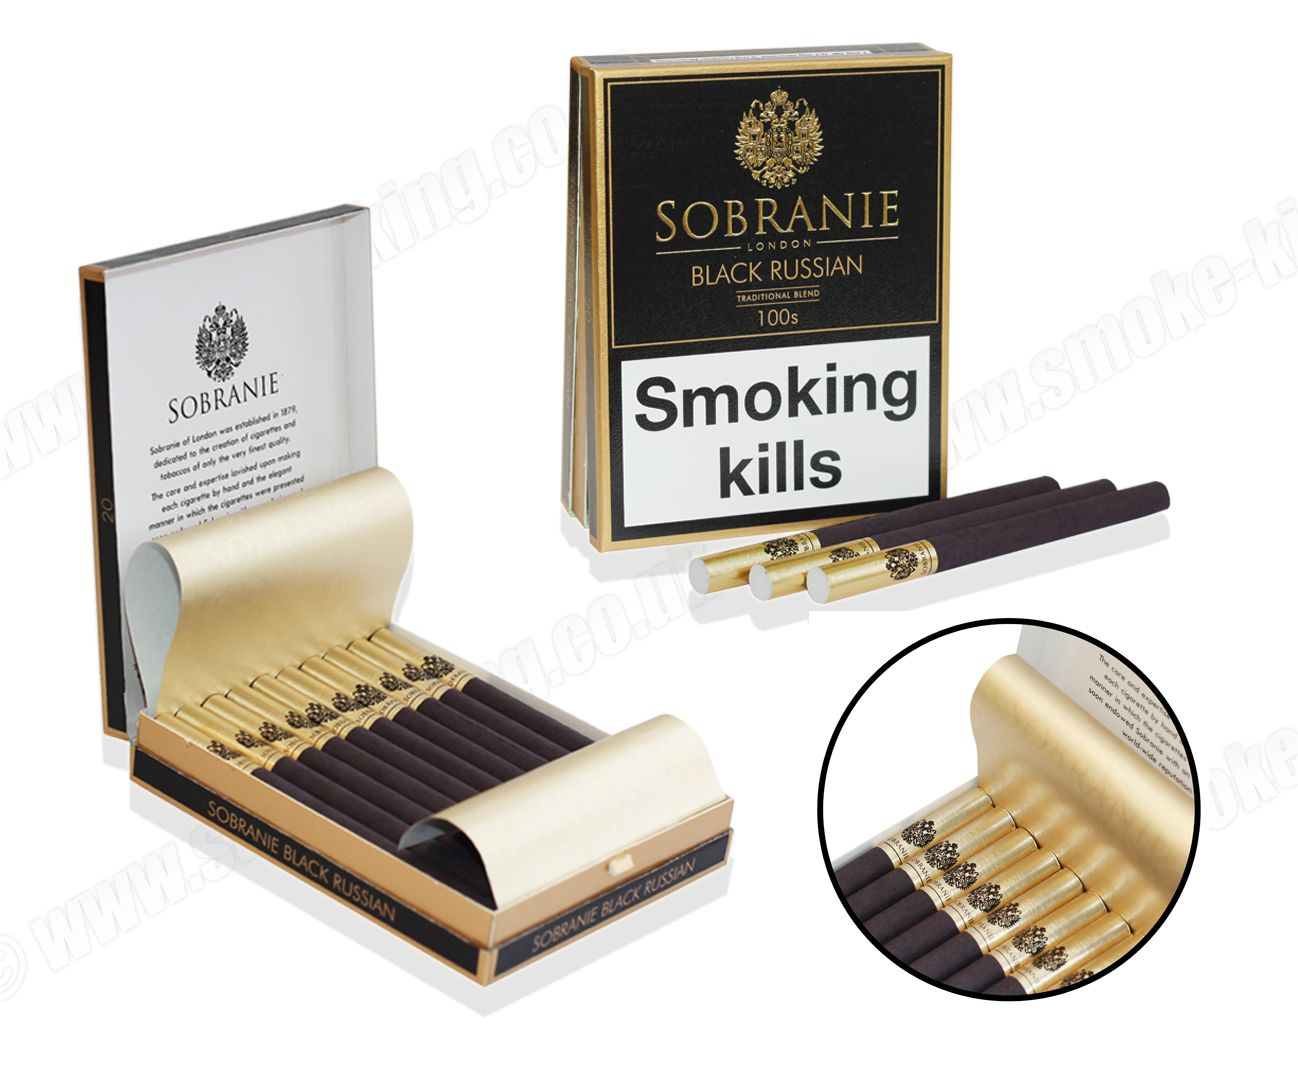 Sobranie Black Russian Cigarettes - Pack of 20 ...